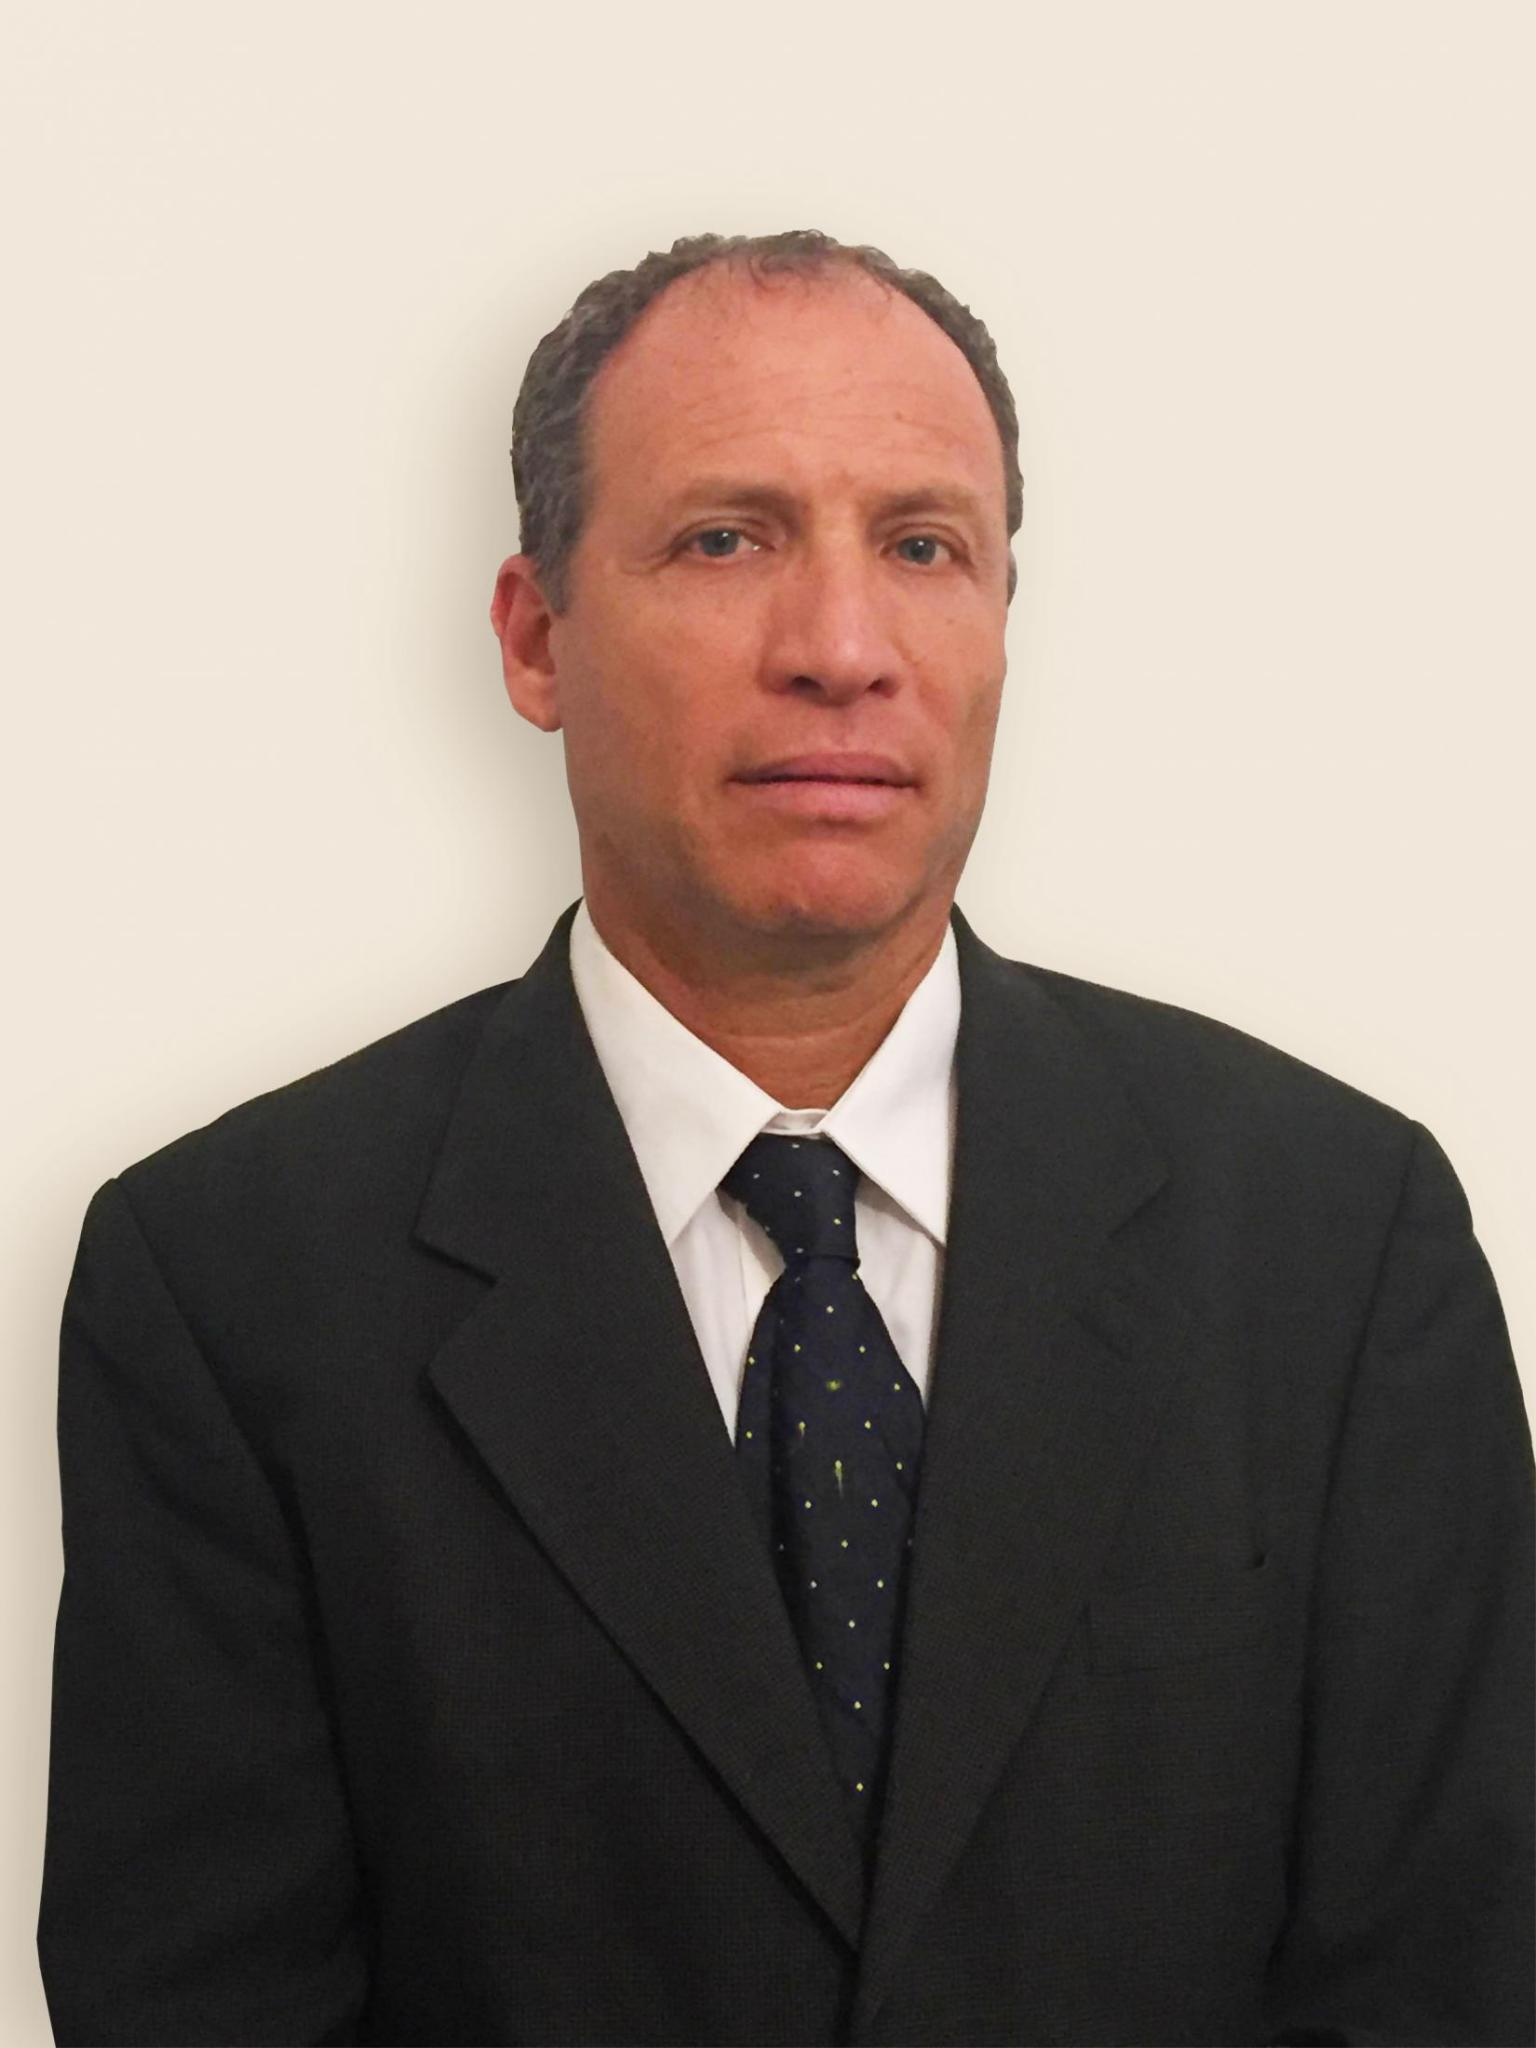 The Stockton Group announces the appointment of Shay Shaanan, as Vice-President of R&D